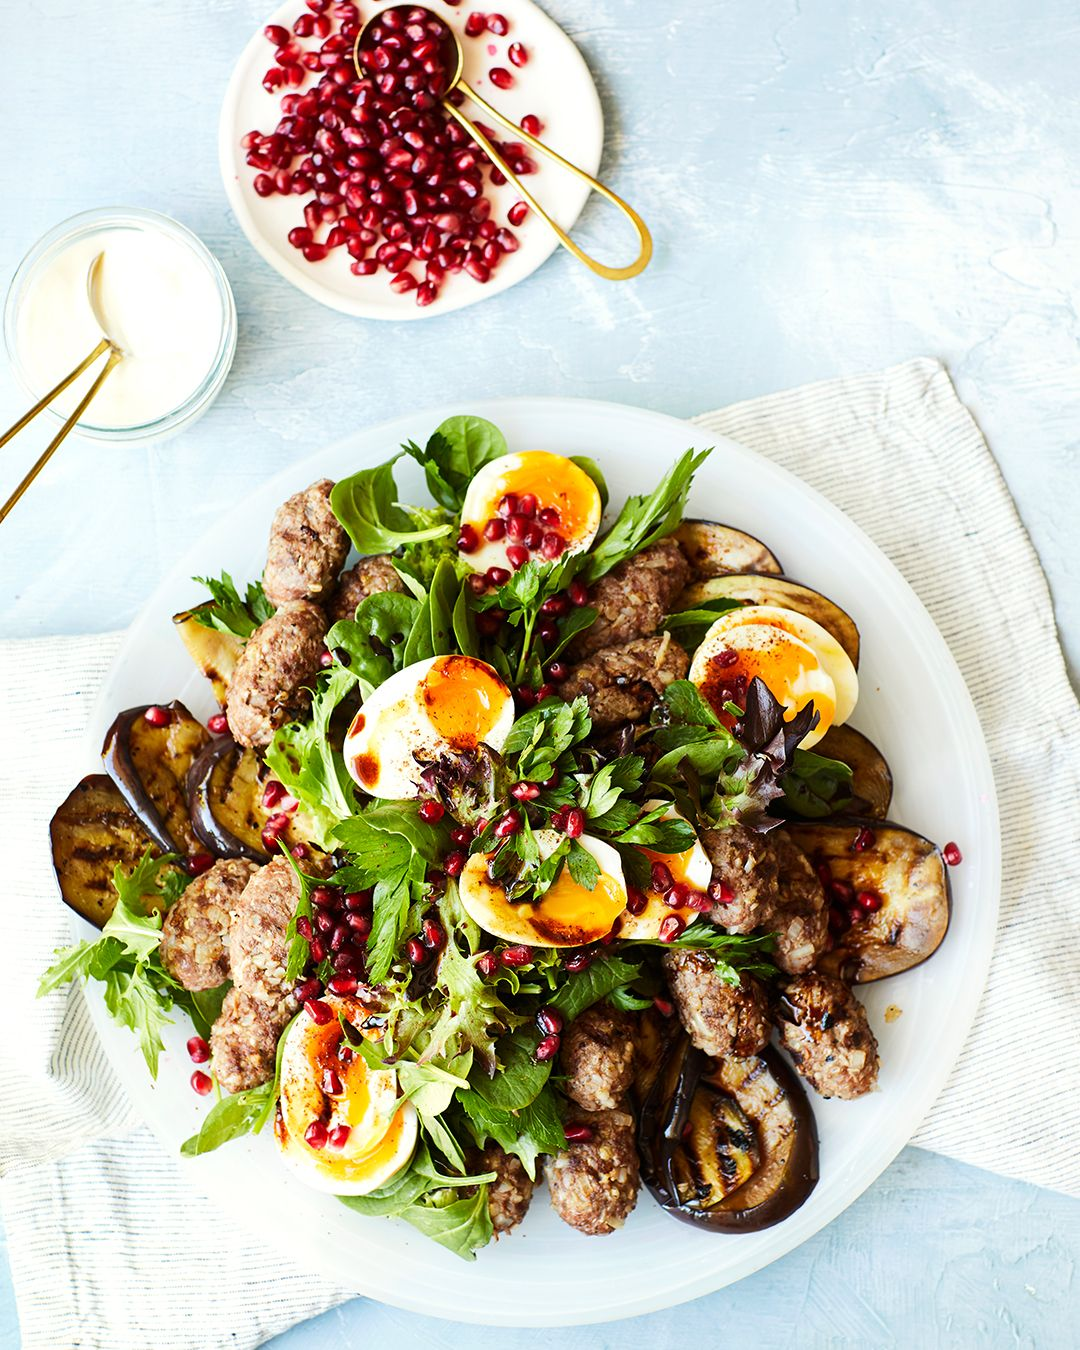 Tonight We Re Making Lamb And Buckwheat Kofta S From Our